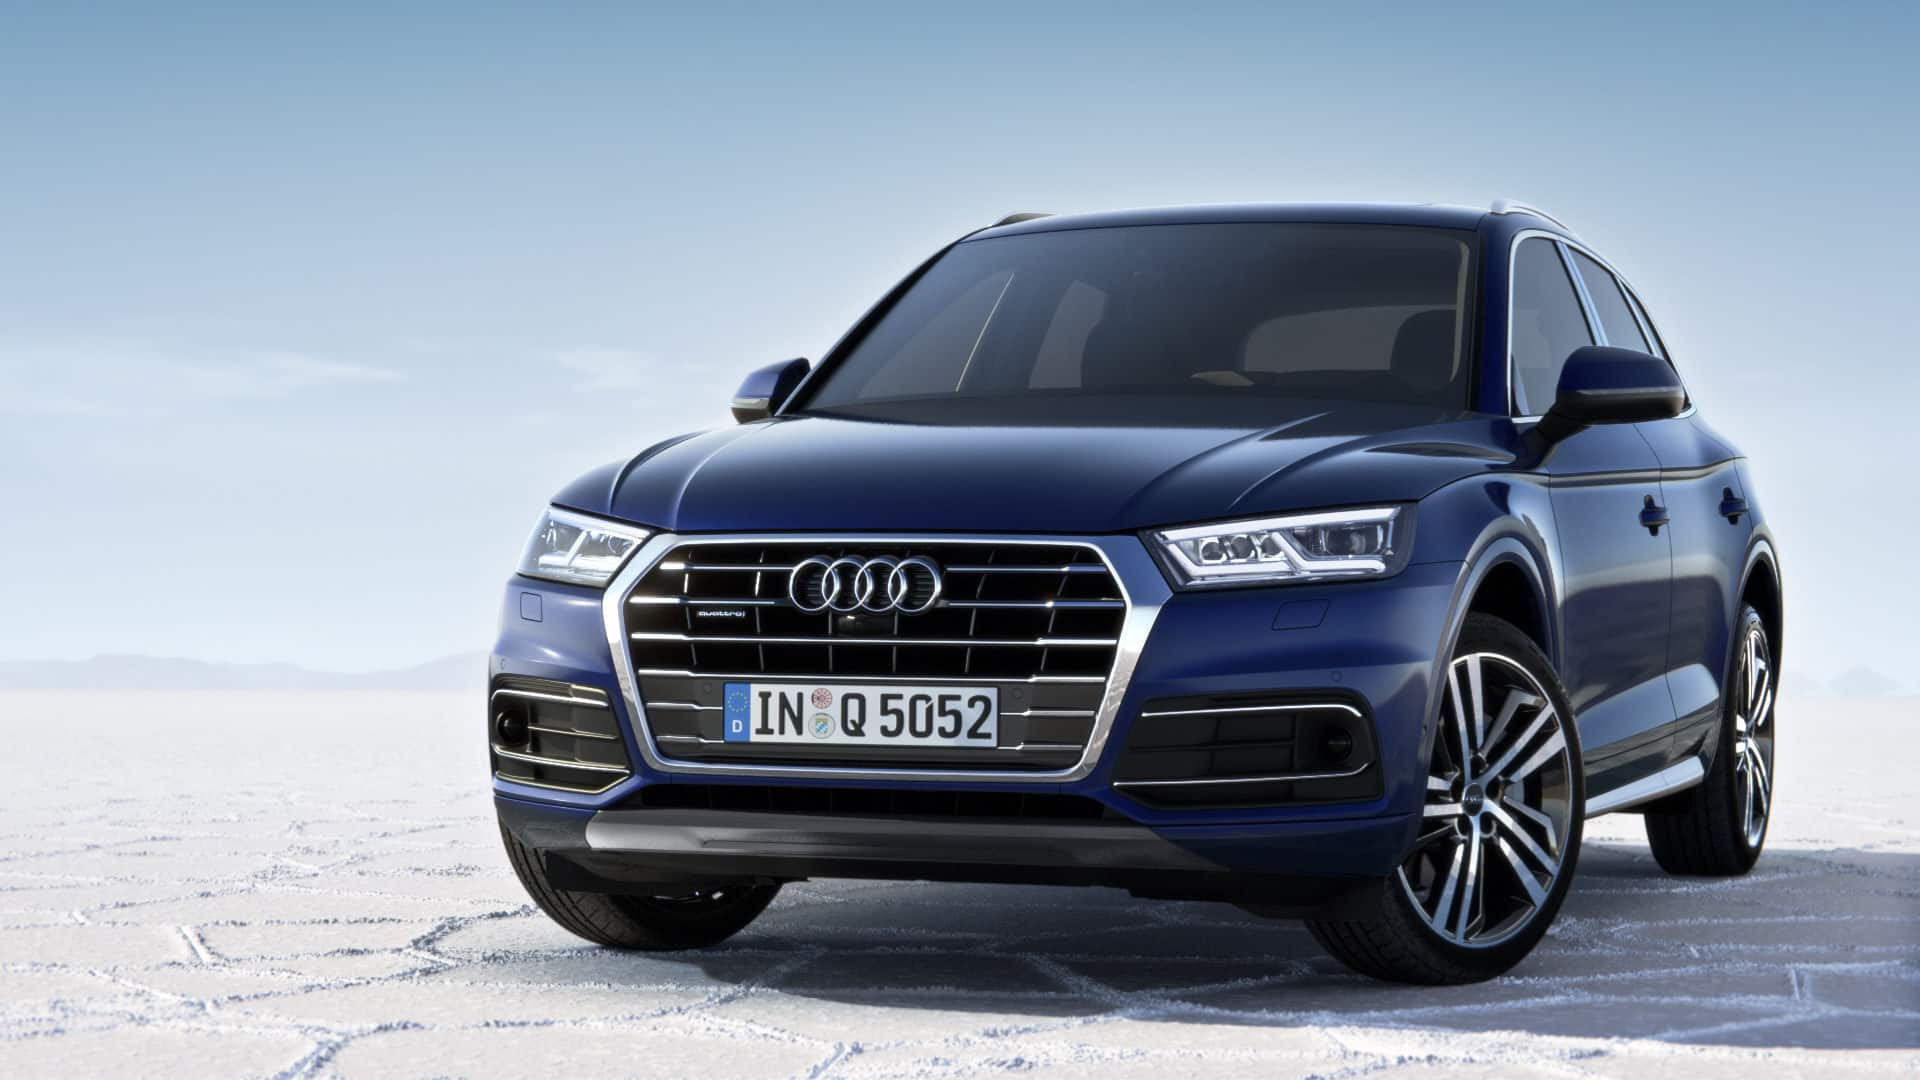 Audi Q5 | Luxury Crossover SUV | Audi Australia > Audi Australia Official Website | Luxury ...